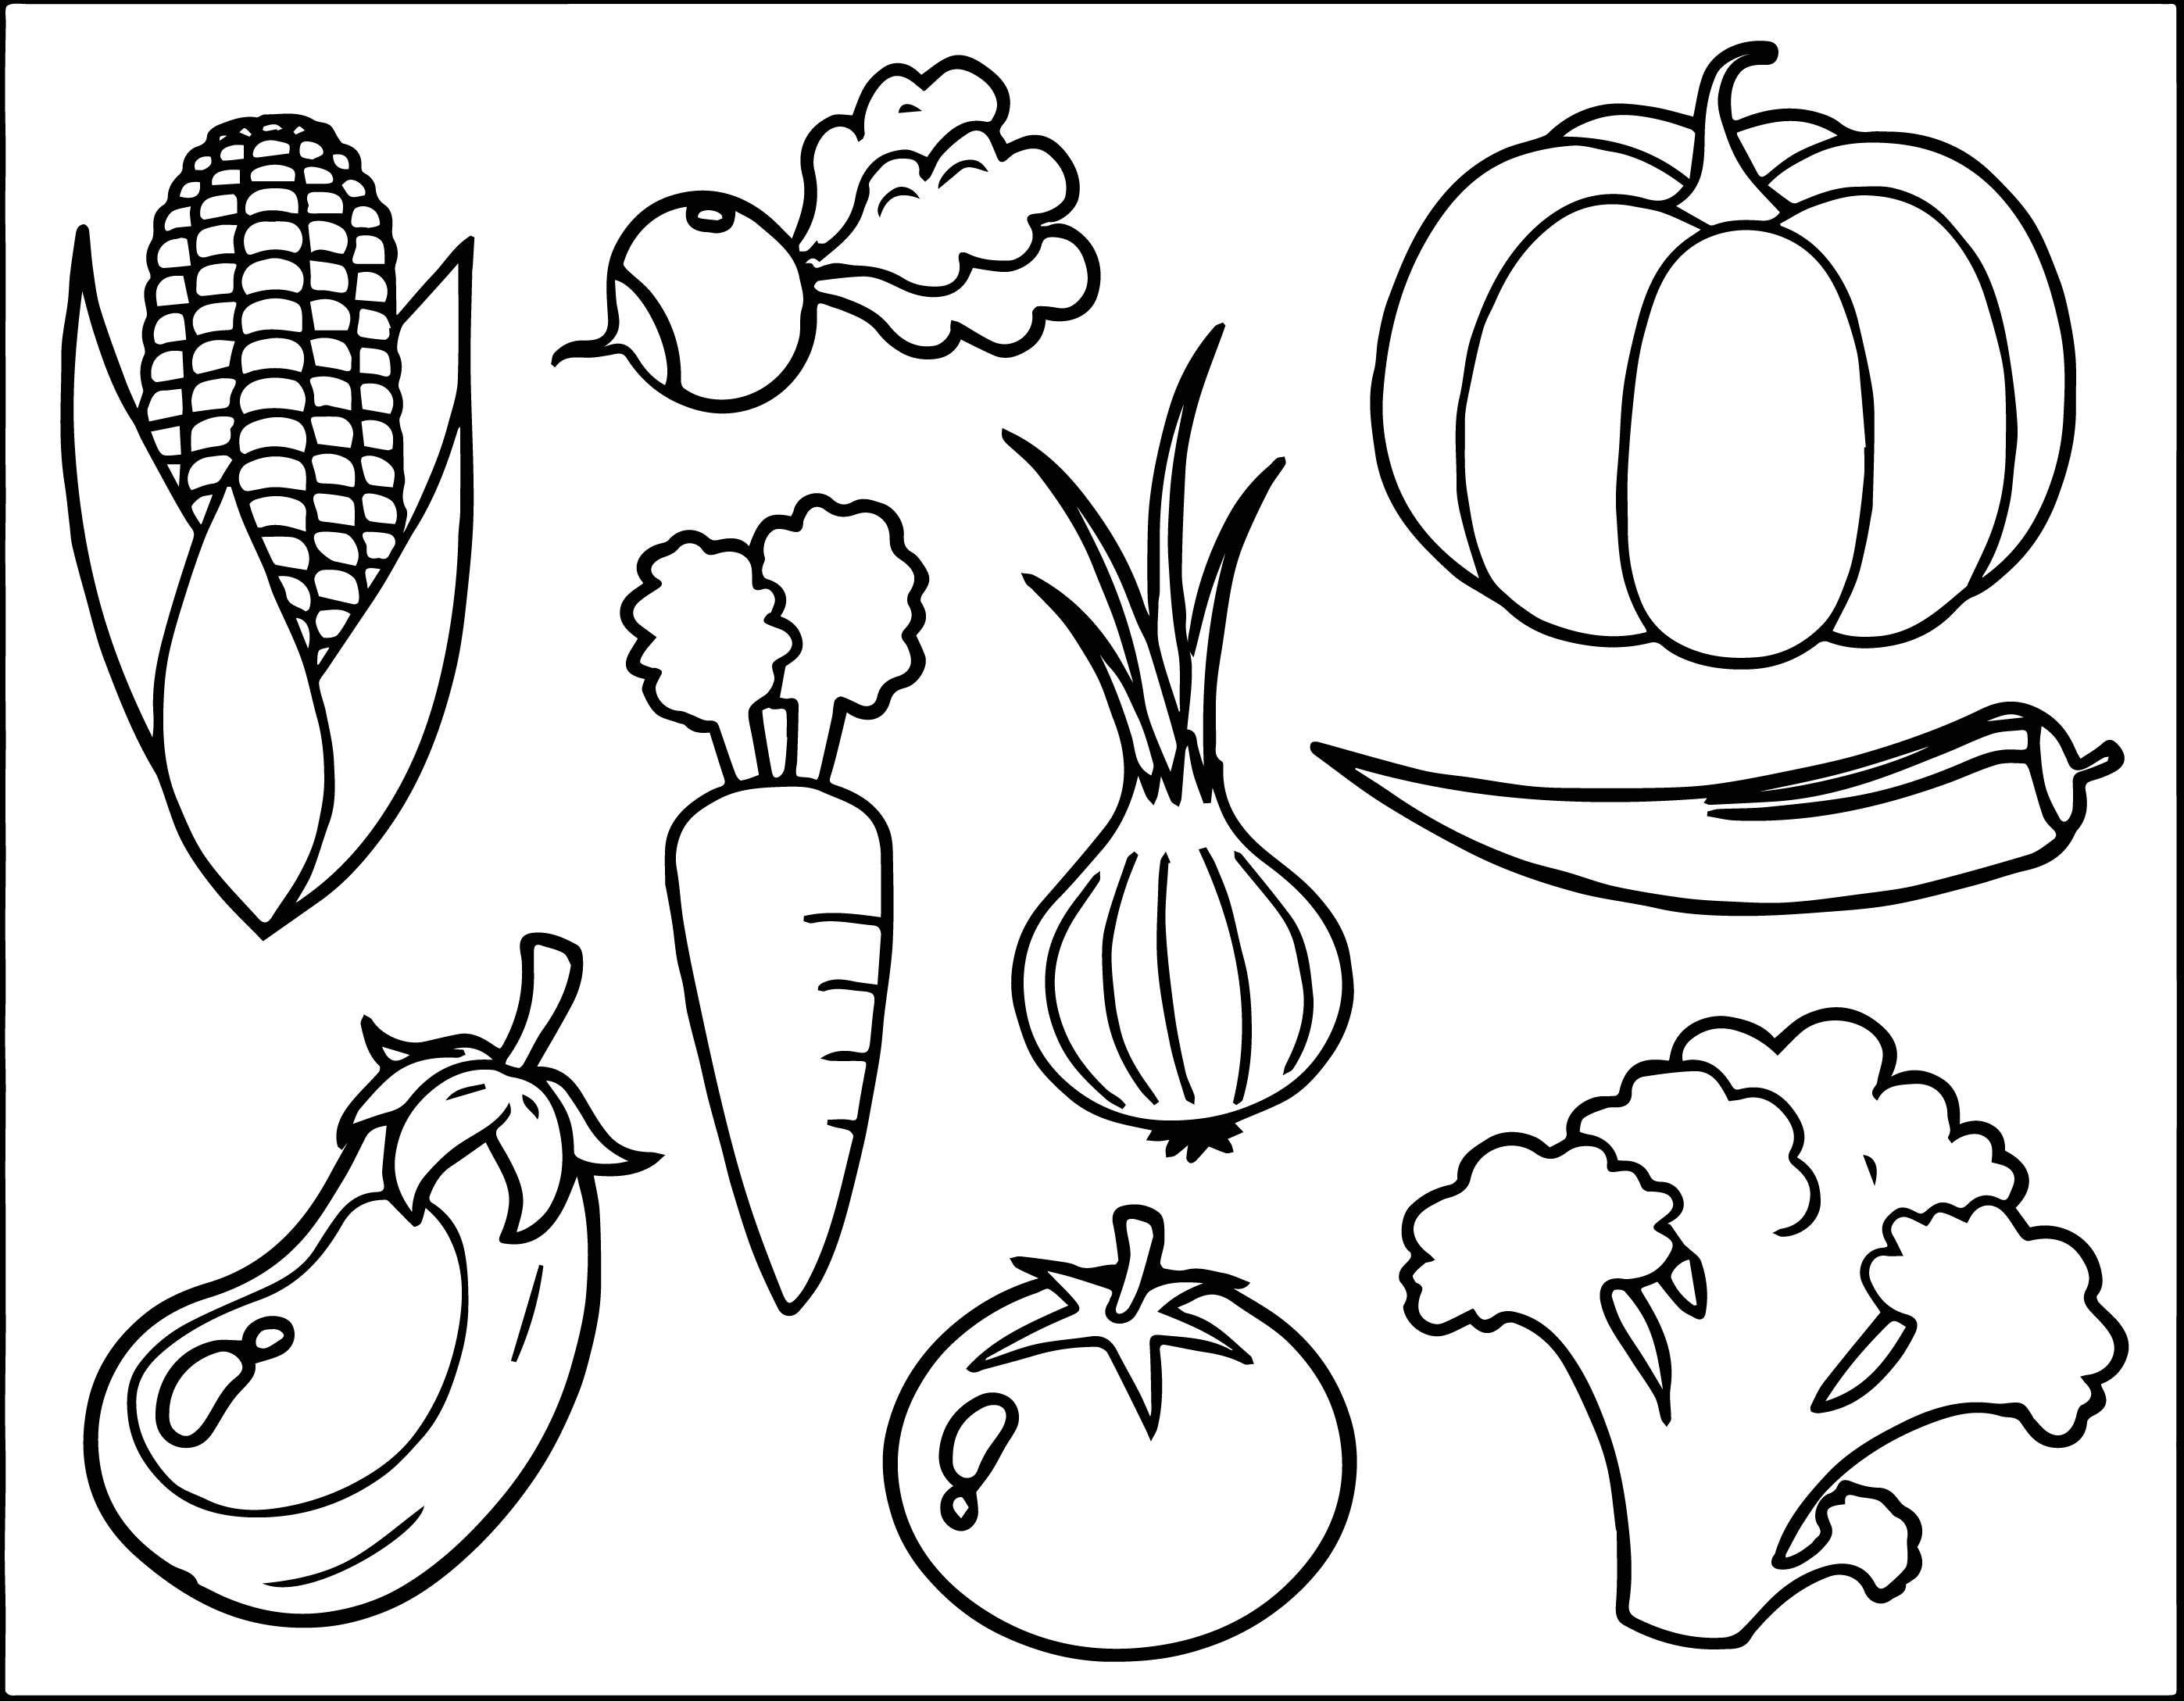 printable vegetable coloring pages vegetable coloring pages best coloring pages for kids coloring pages printable vegetable